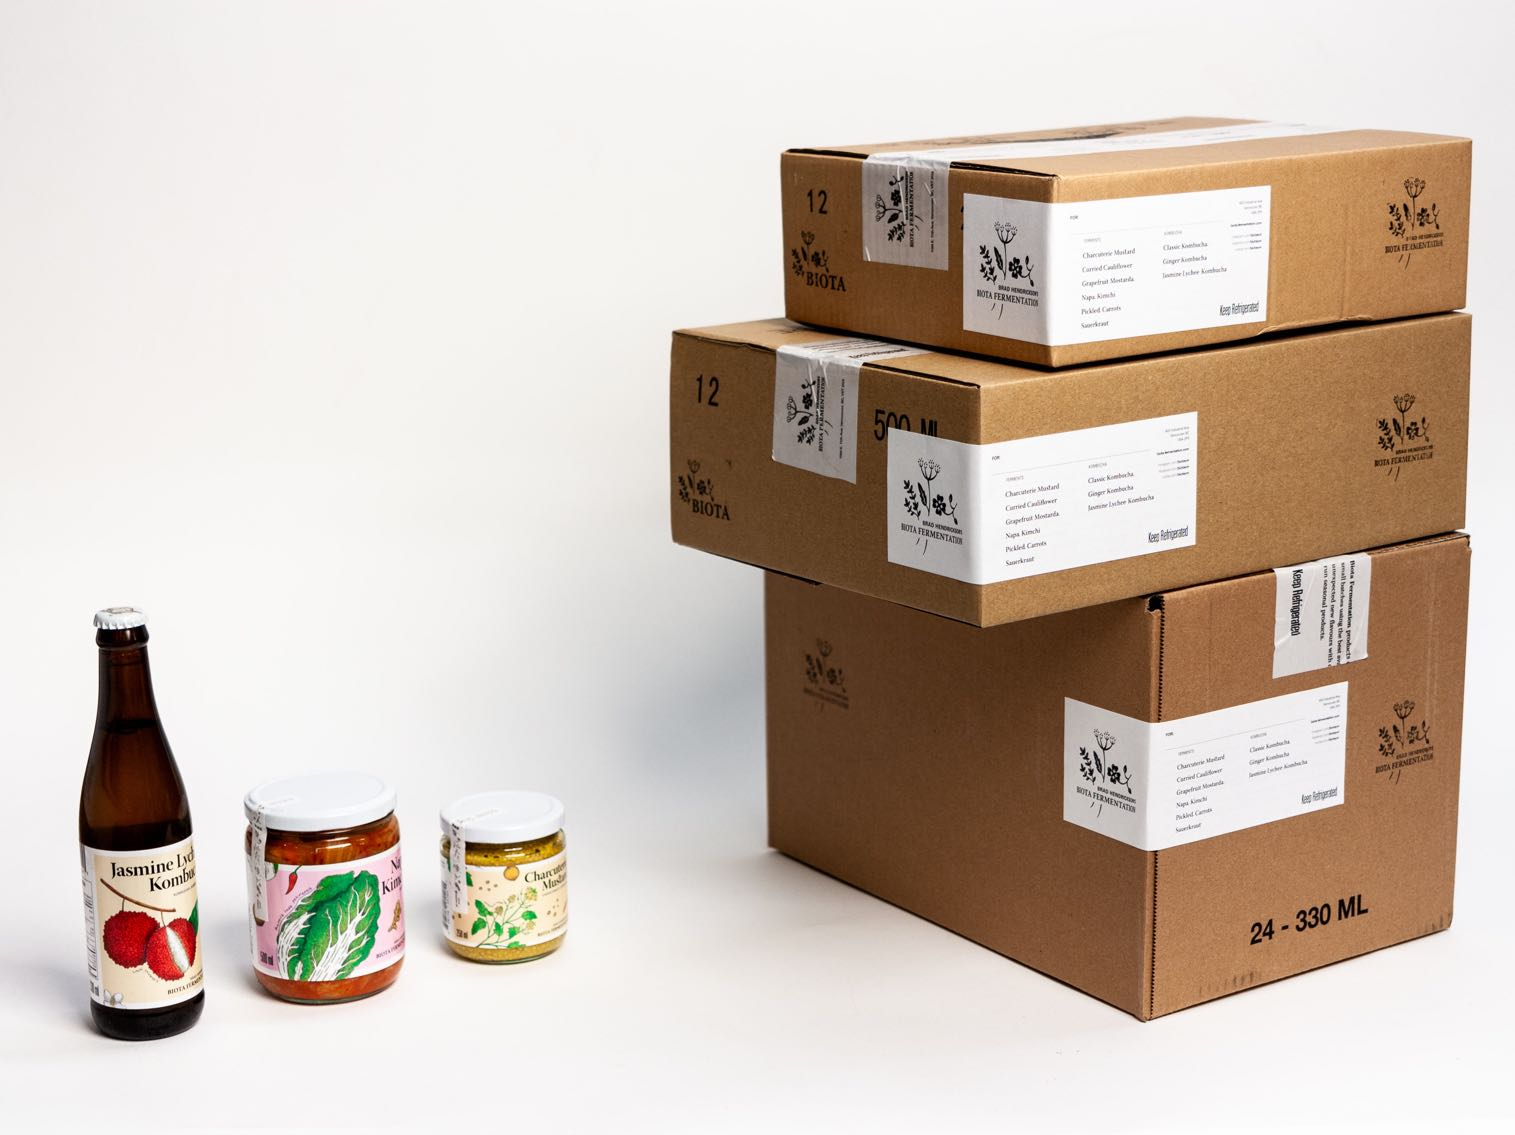 Biota Fermentation Craft Shipping boxes with Custom branded tape, labels, and ink stamping creating a contrasting color, visually pleasing, informationally clear shipping box  — by Dima Yagnyuk.